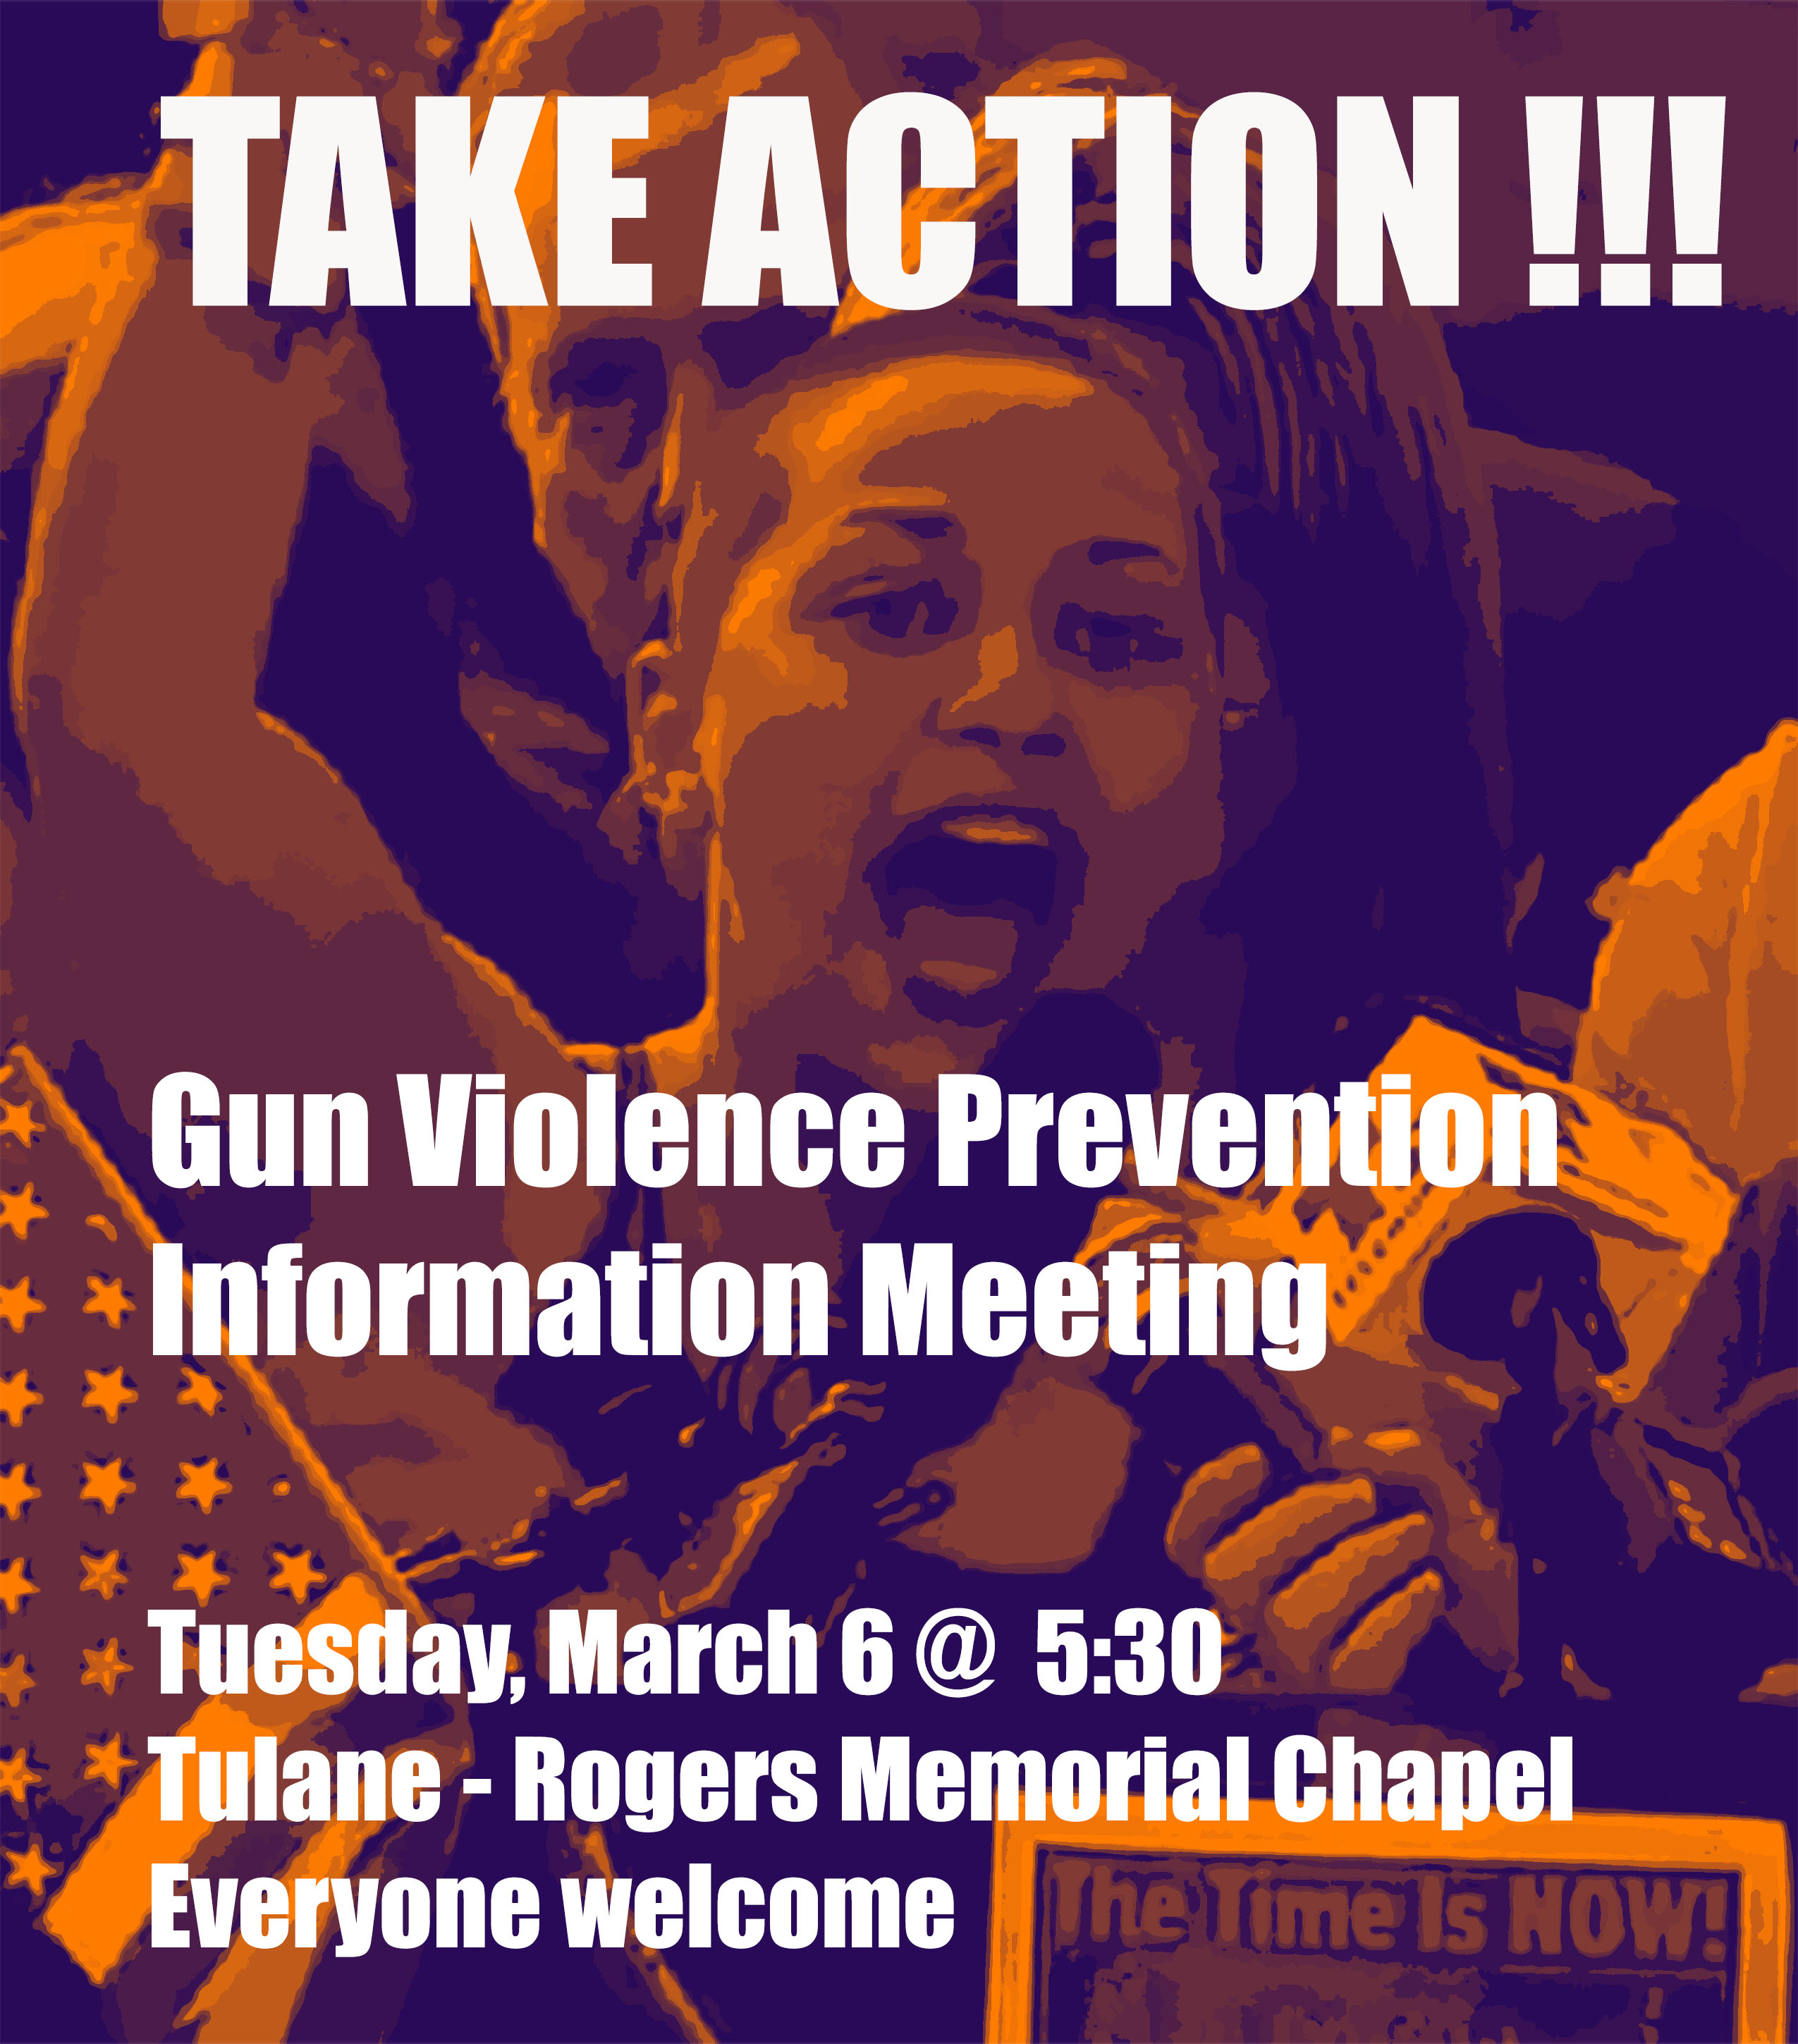 Gun Violence Prevention Information Meeting, Amnesty International